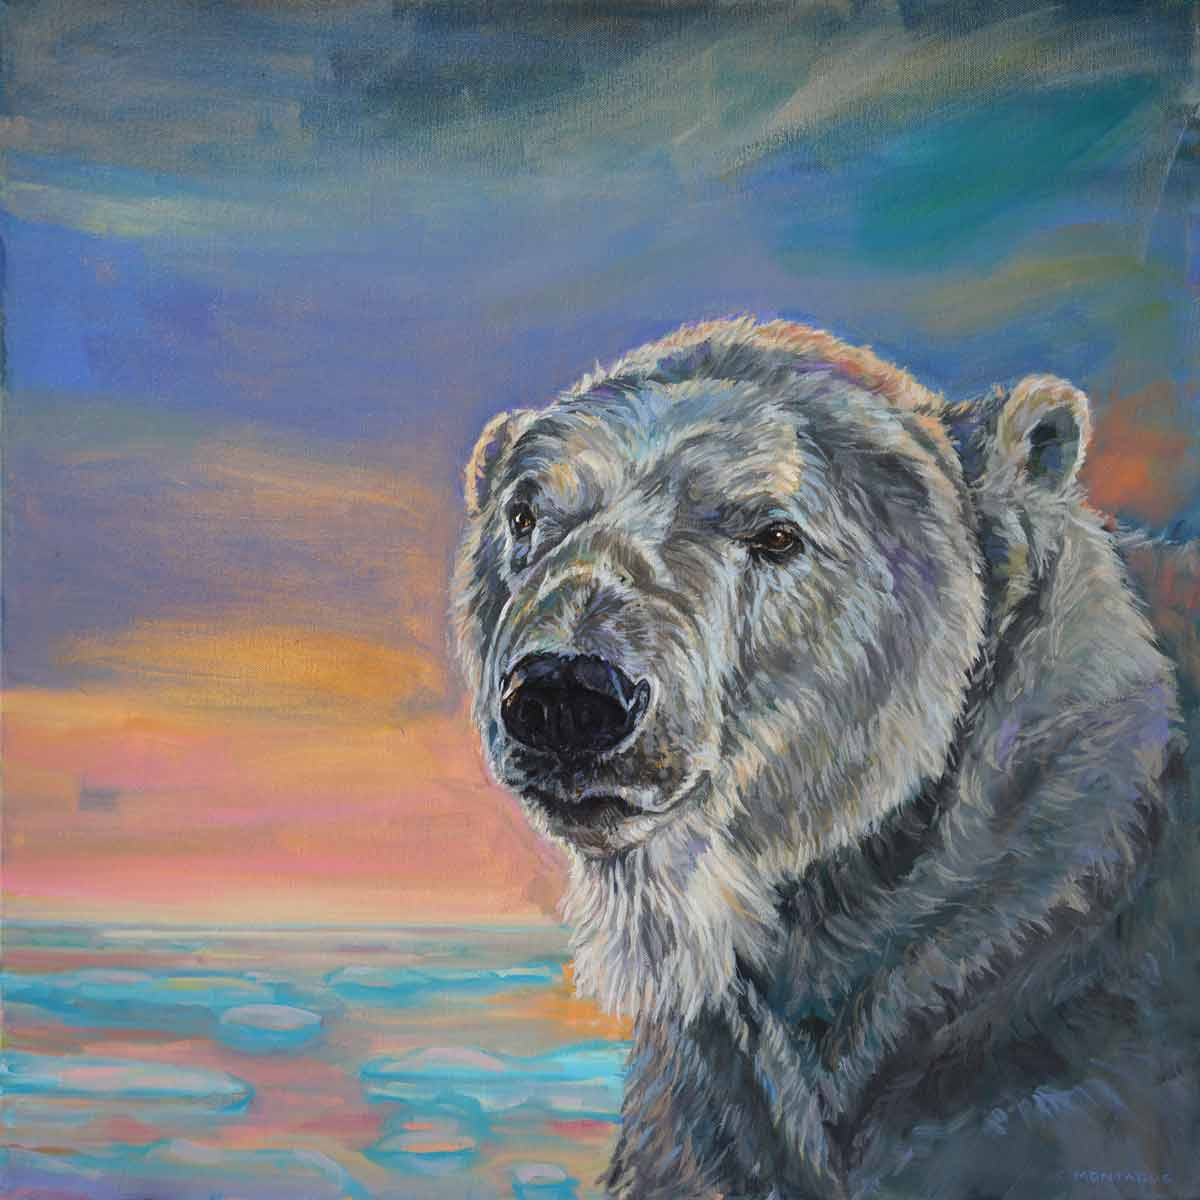 "Into The Sunset 2.    A Polar Bear Spring Series. For more information on this painting   http://www.christinemontague.com/polar-bear-paintings/sunset-polar-bear-2  ©Christine Montague 2019 24"" x 24"" x 1.5"" oil painting on canvas."